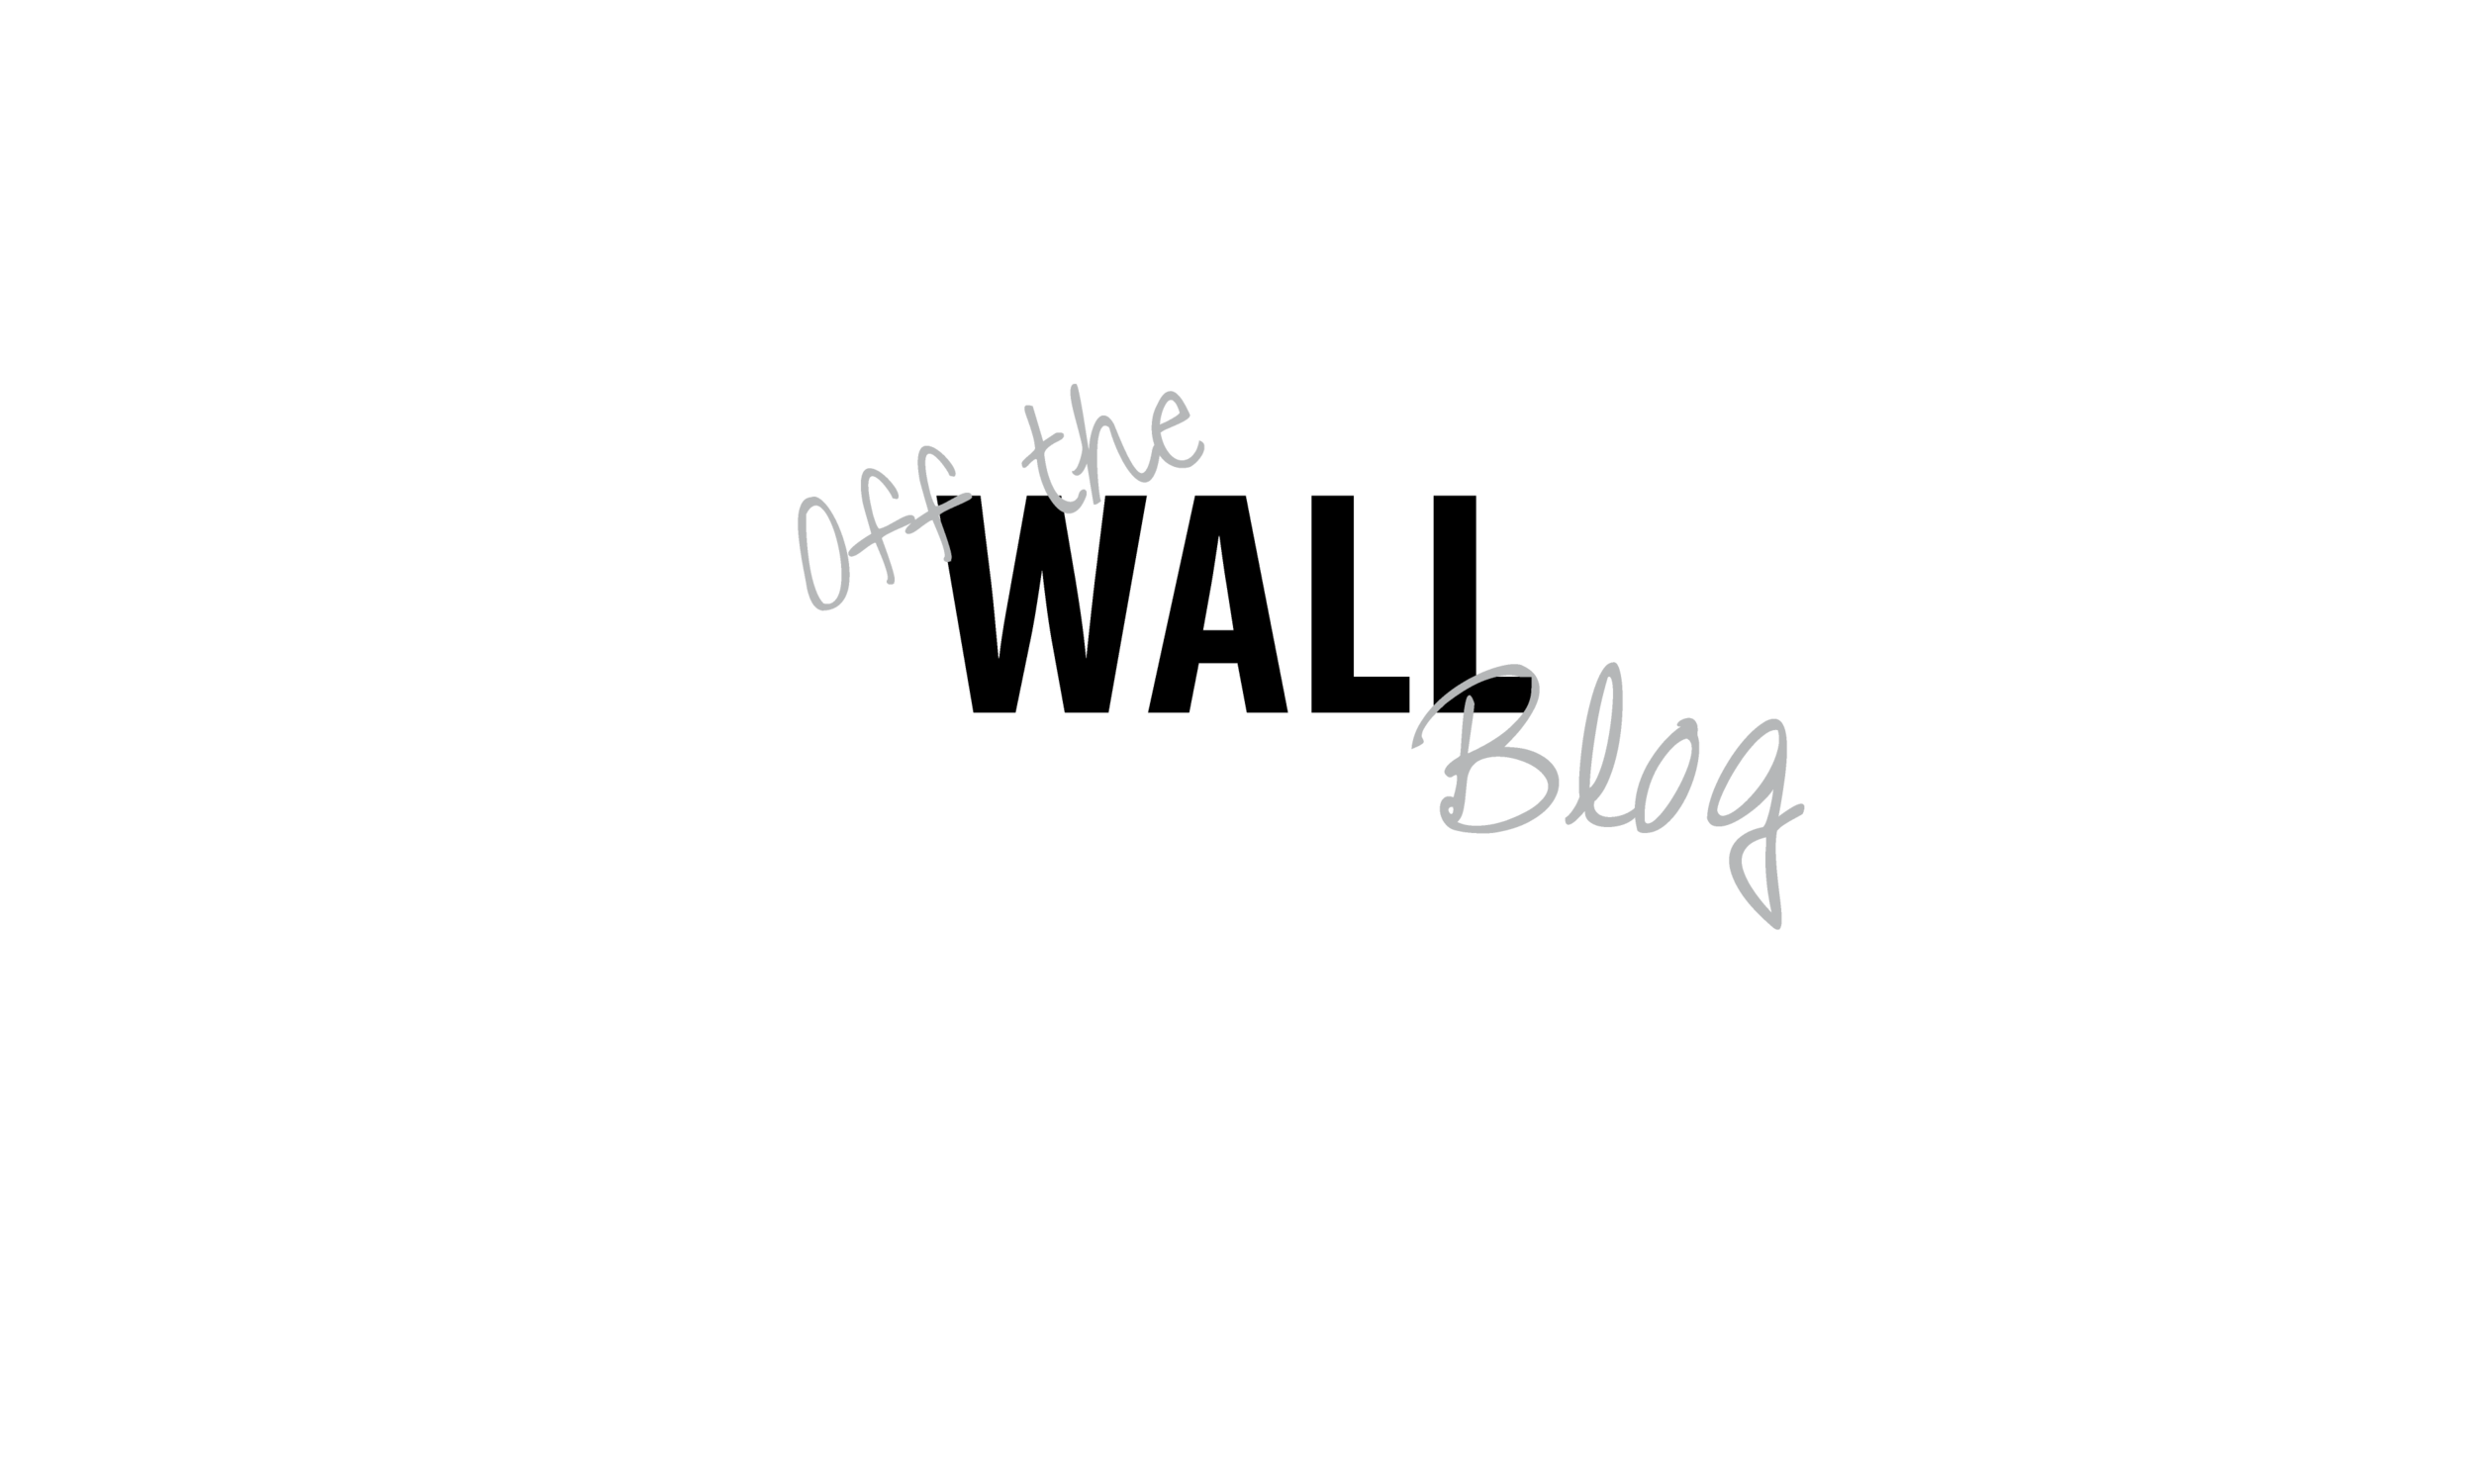 Off The Wall Blog-01.png